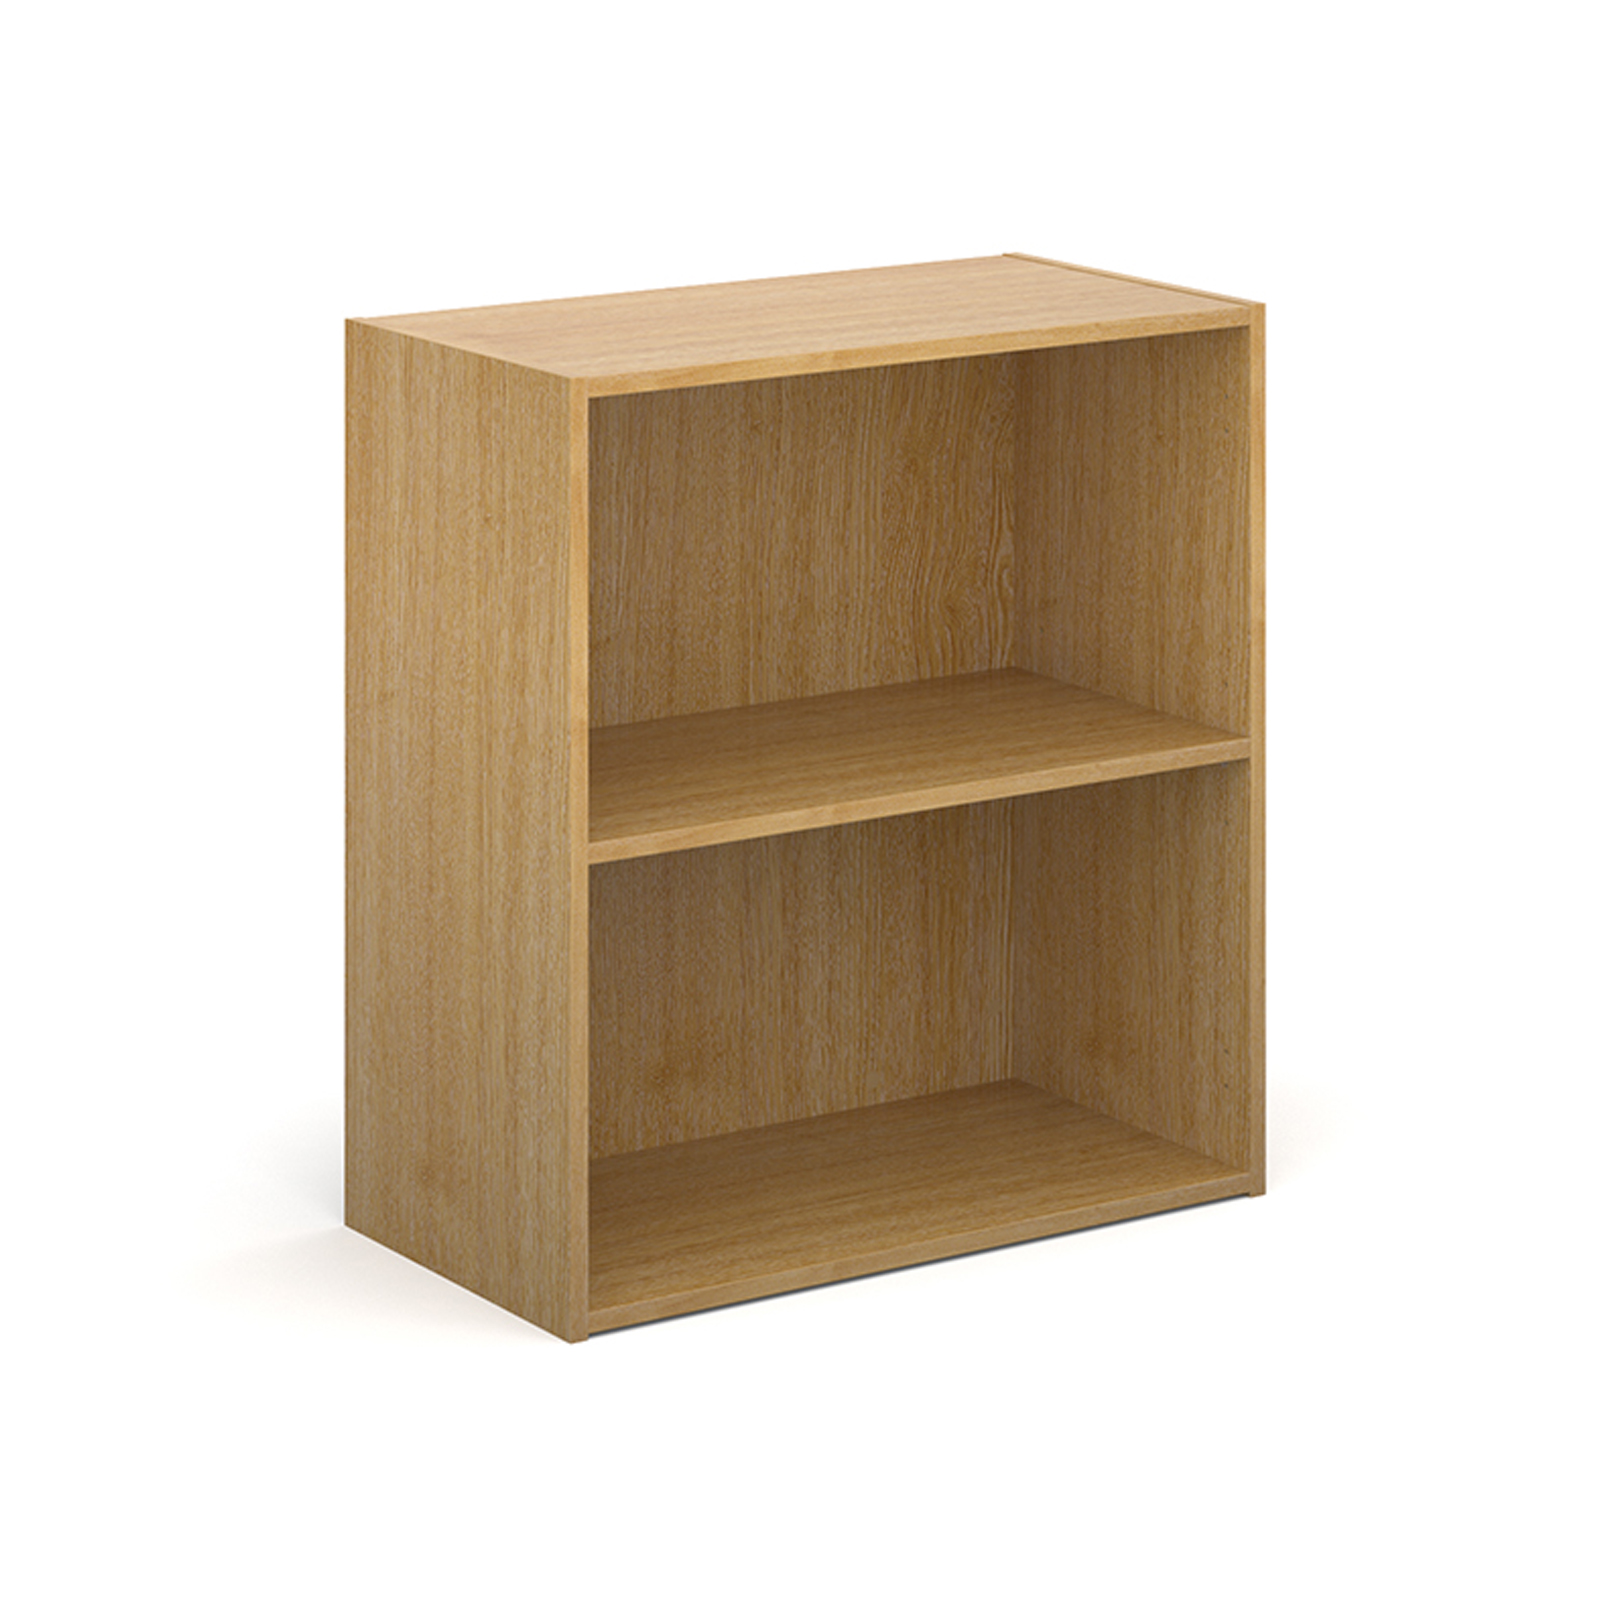 Up To 1200mm High Contract bookcase 830mm high with 1 shelf - oak